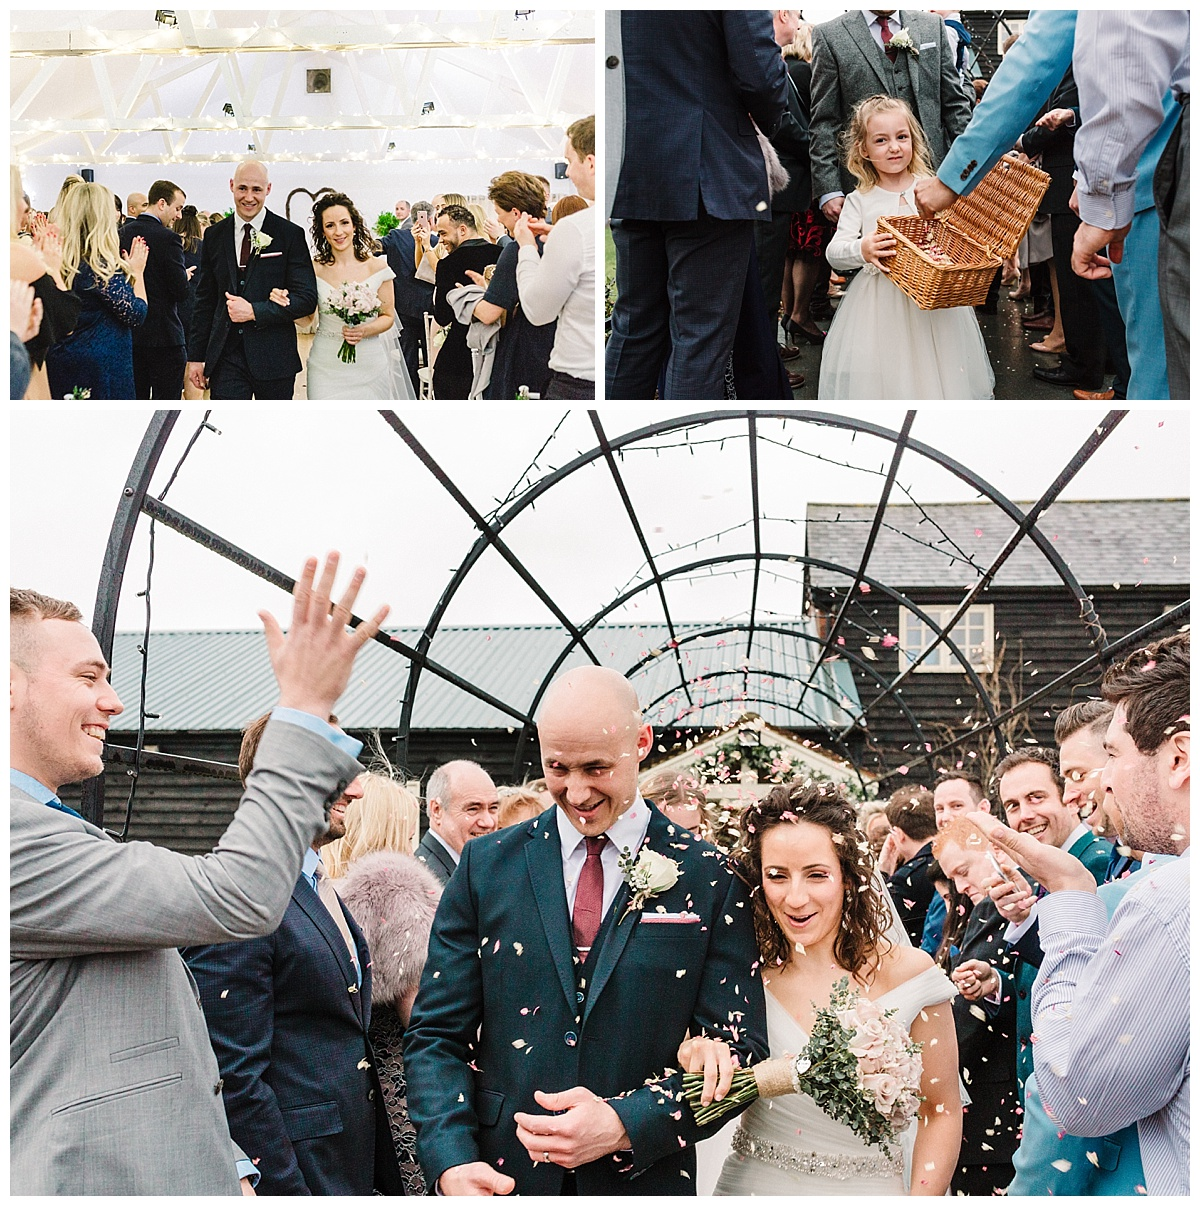 guests throw confetti over a bride and groom